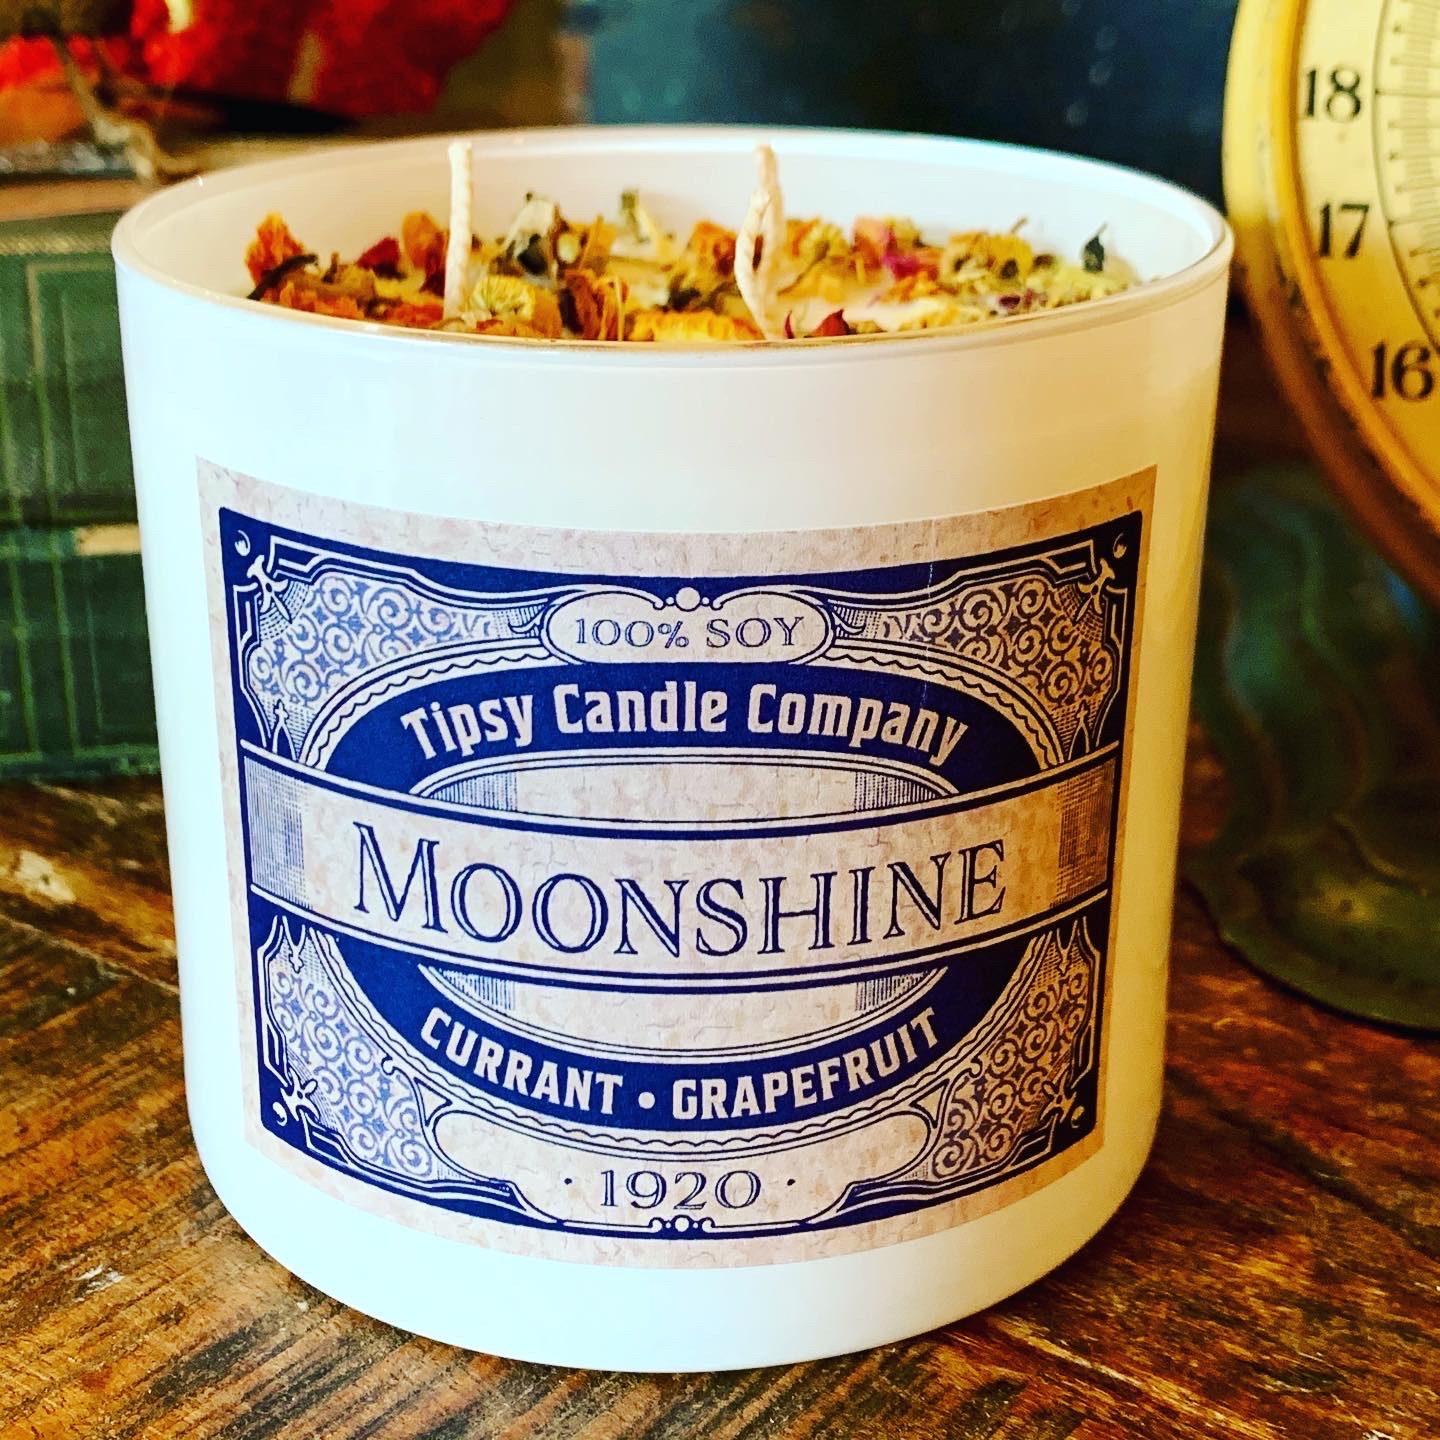 Moonshine 3 wick Soy 17 ounce Candle made by Tipsy Candle Company